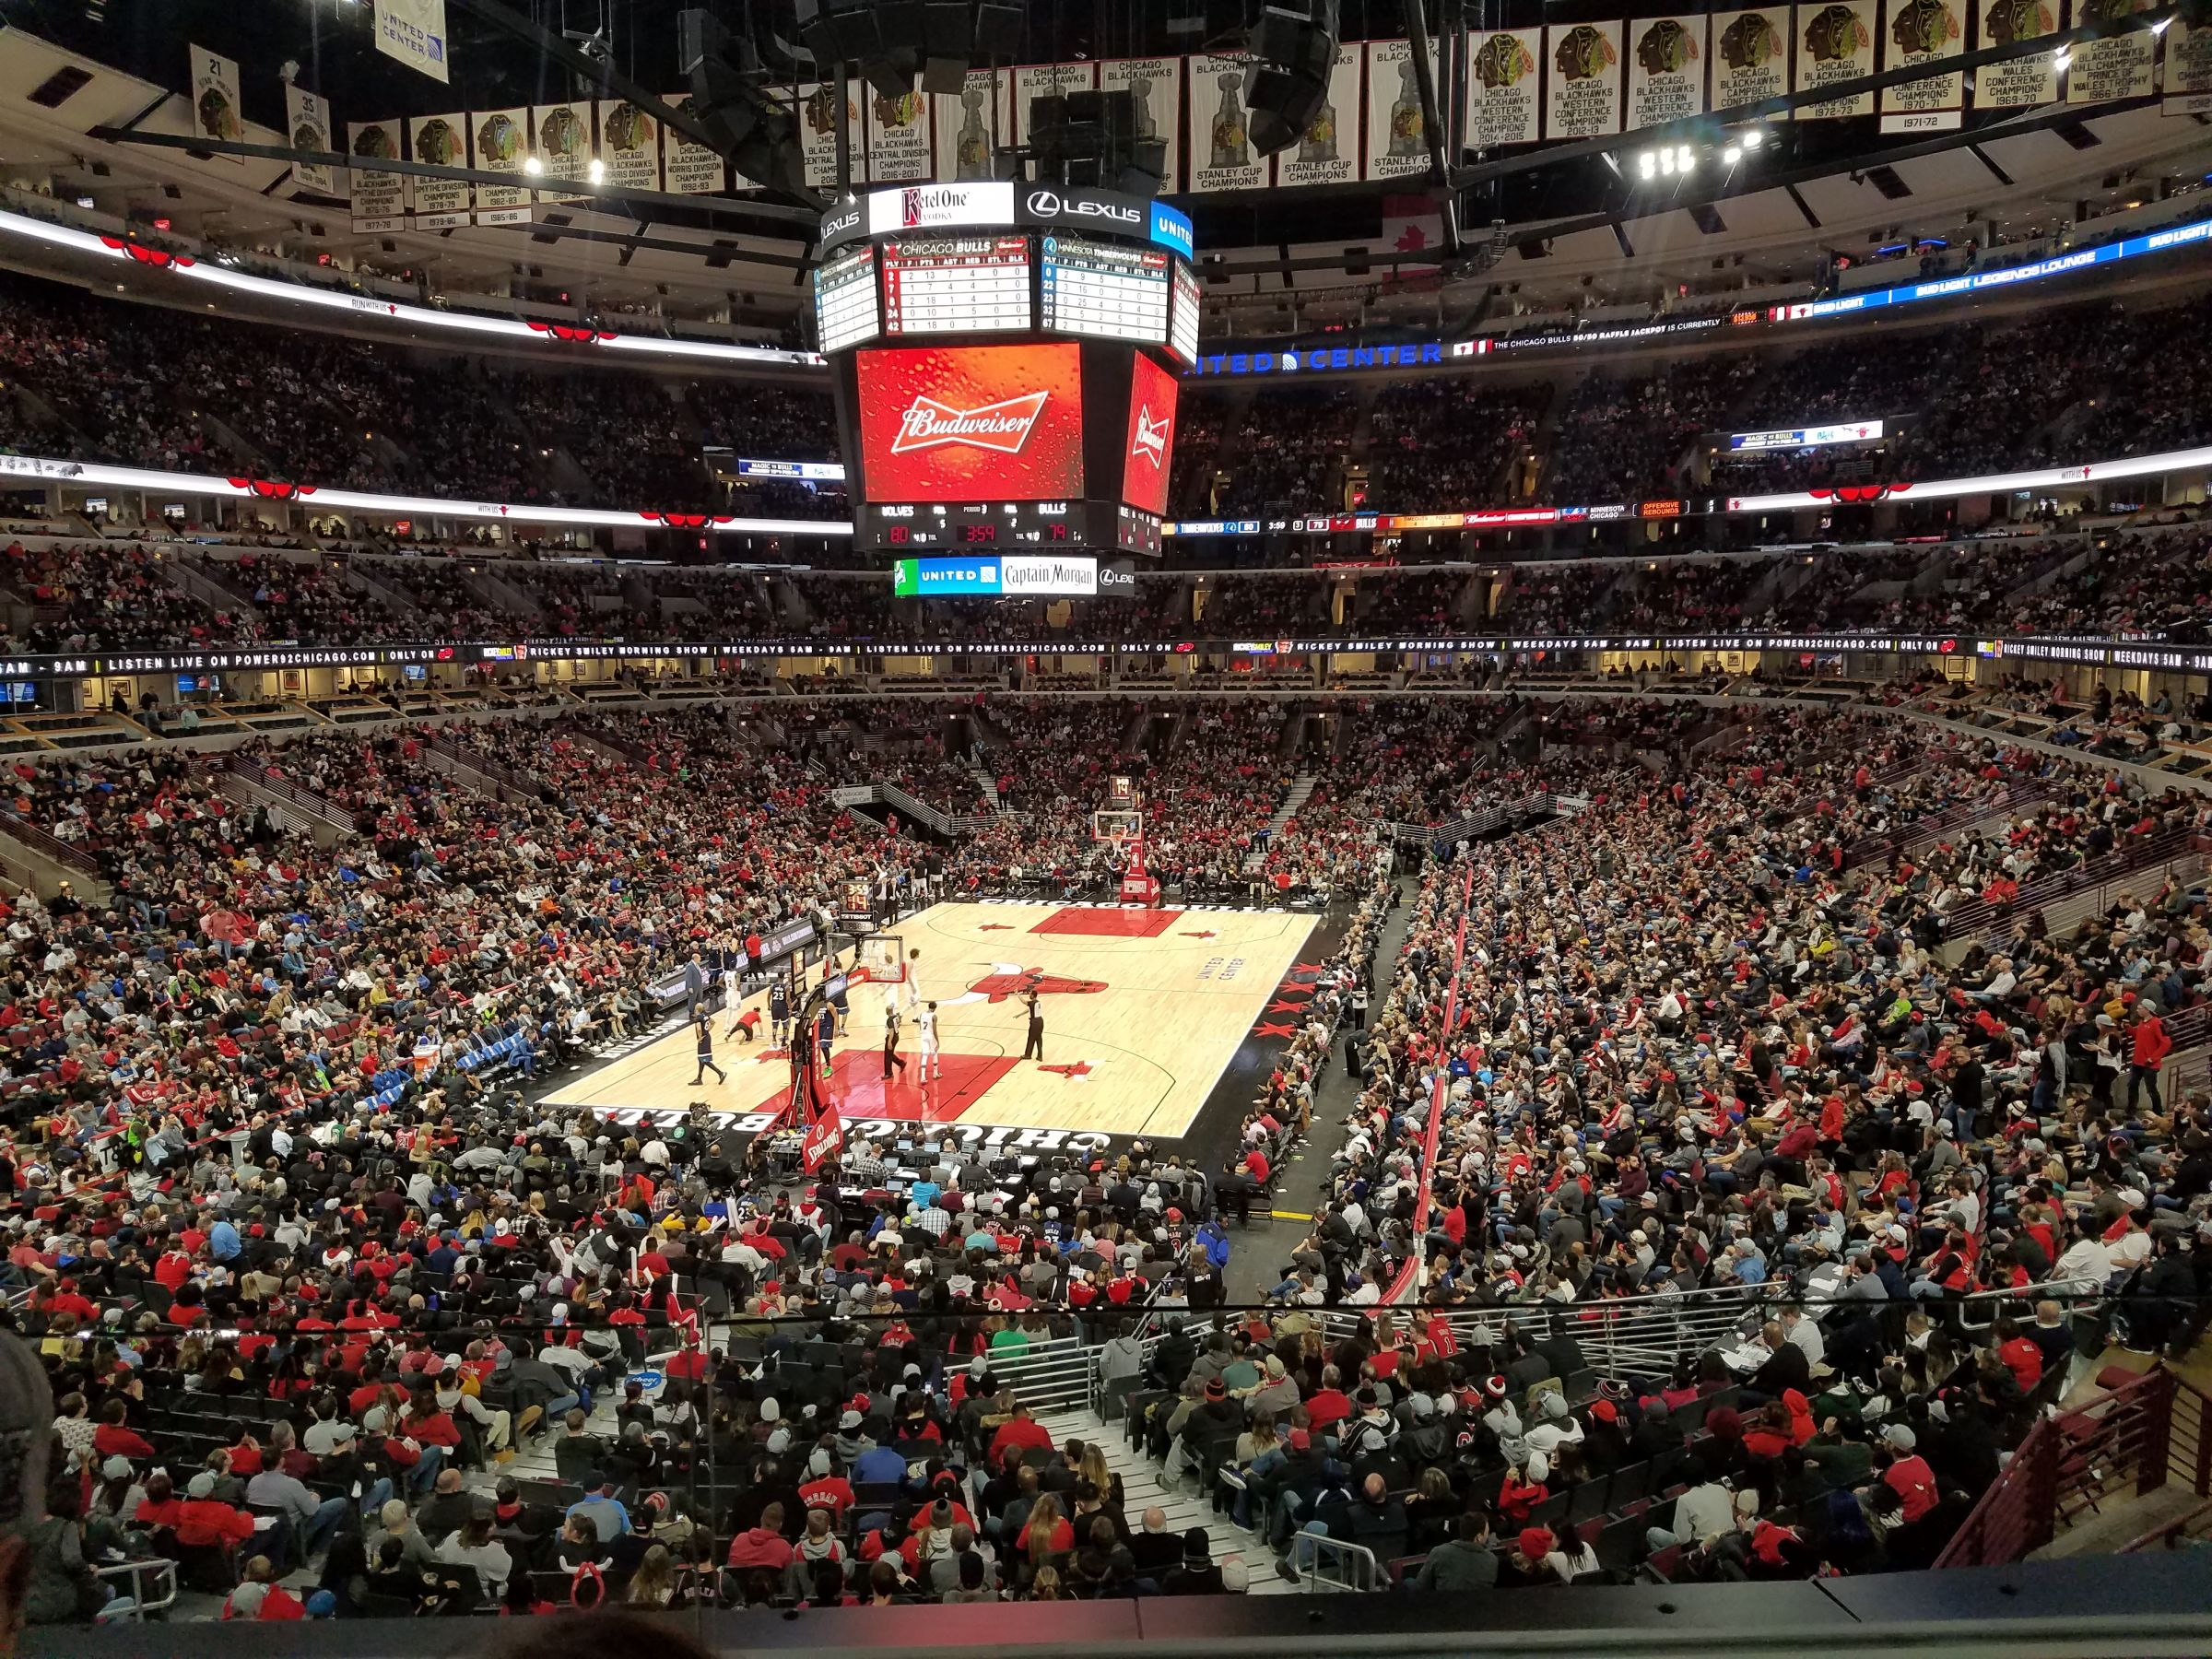 Chicago Bulls Seat View for United Center Section 224, Row 2, Seat 9